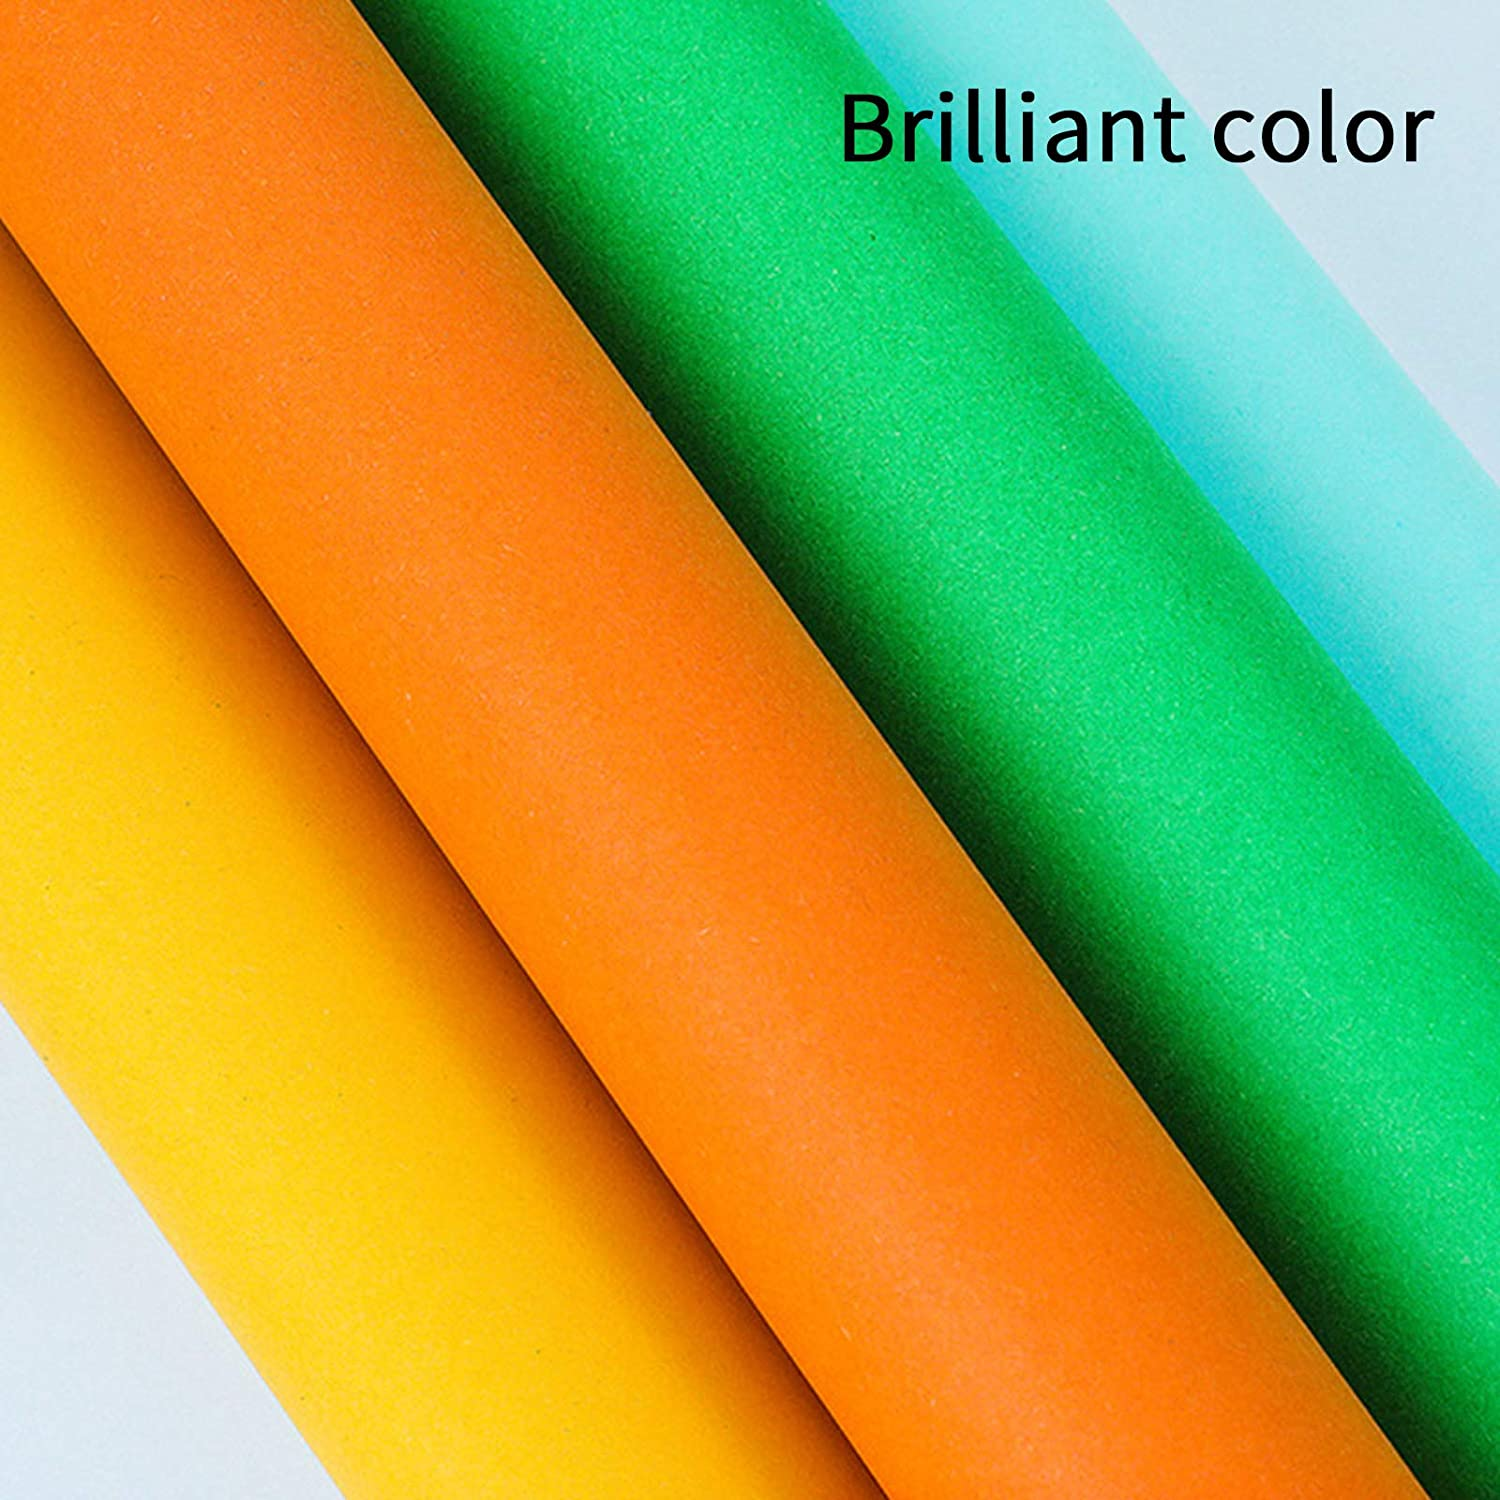 100 PCS Origami Paper,Colored Paper for 20 Colors,6 Inch Square Origami Paper for Kids,Adults,Beginners,Arts Crafts Projects,School Craft Lessons